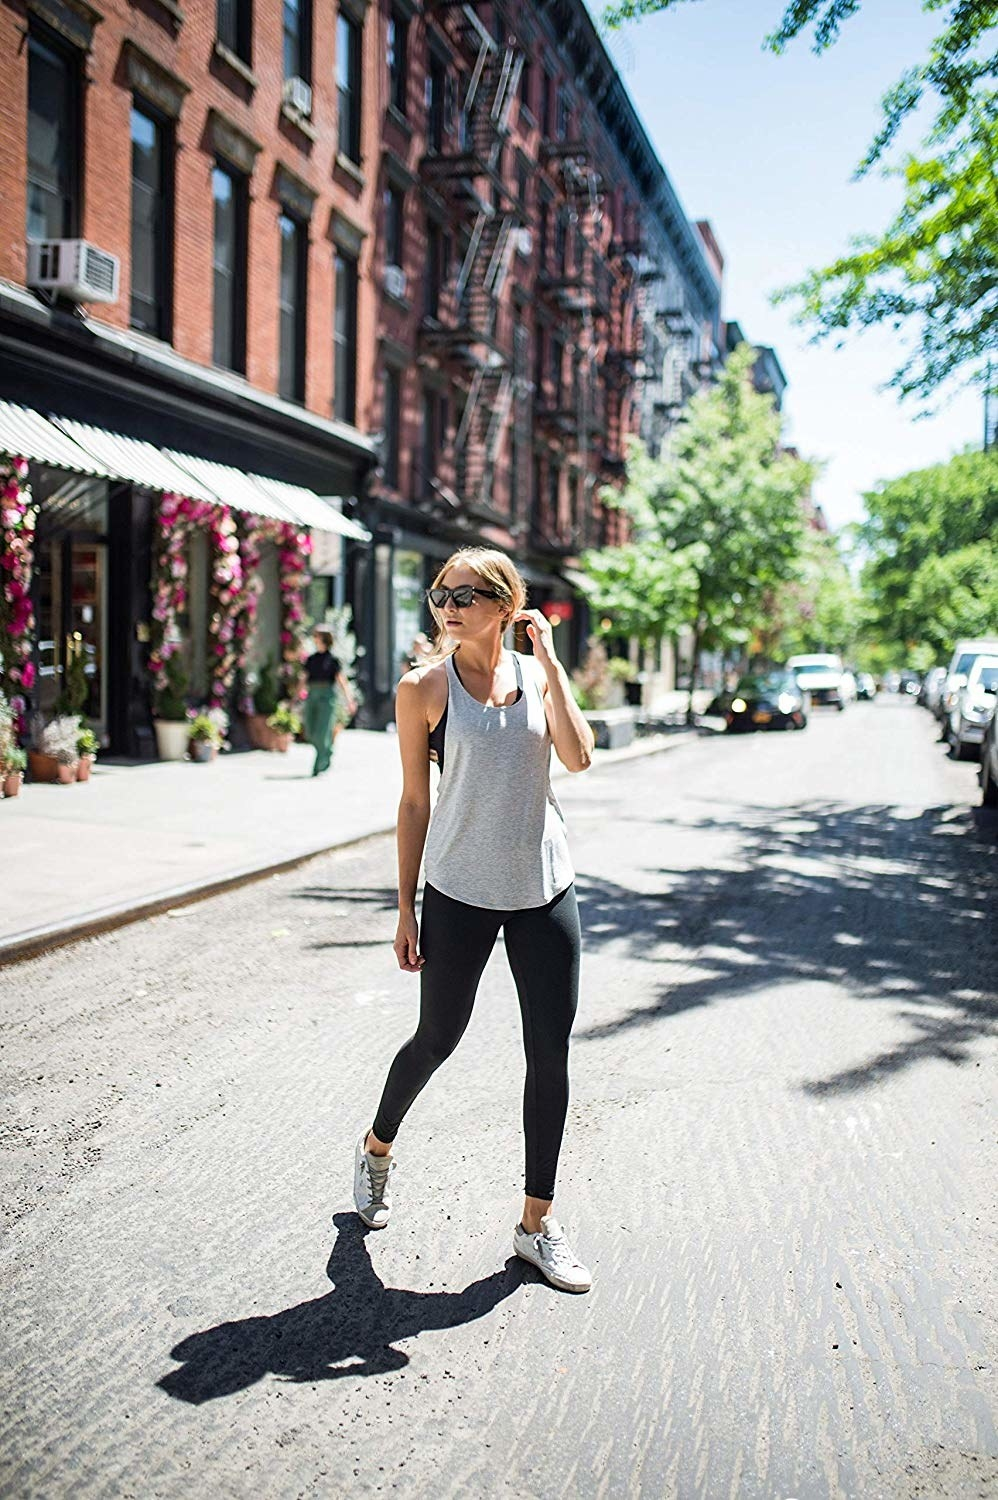 A model wearing the leggings while crossing the street